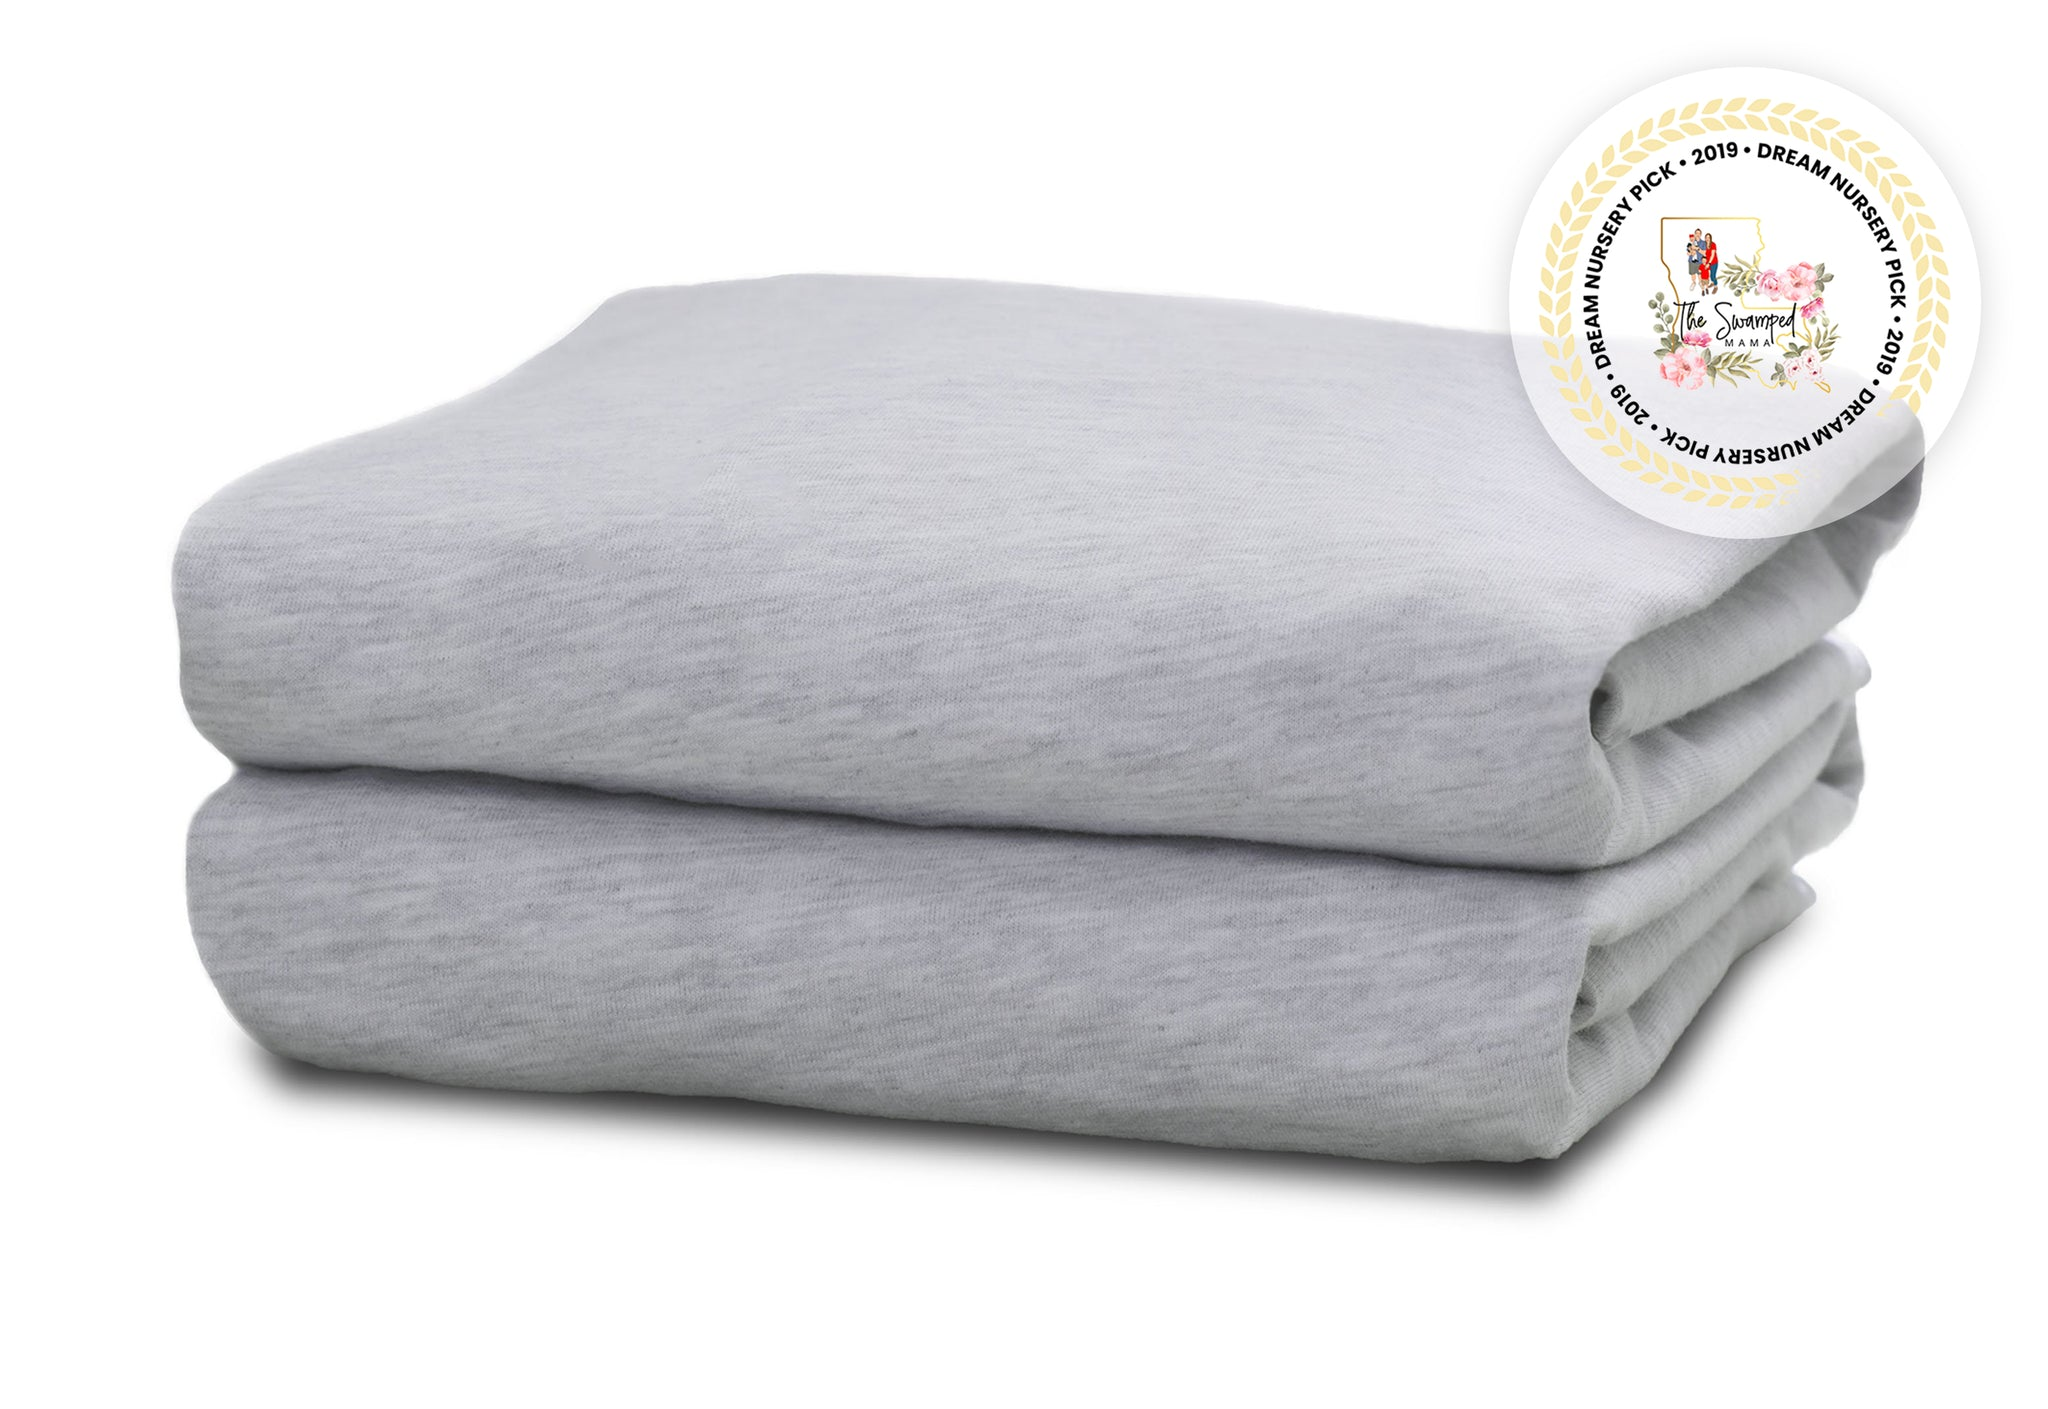 Delta Children Heather Grey (053) Fitted Crib Sheet Set – 2 Pack Mattress Folded View